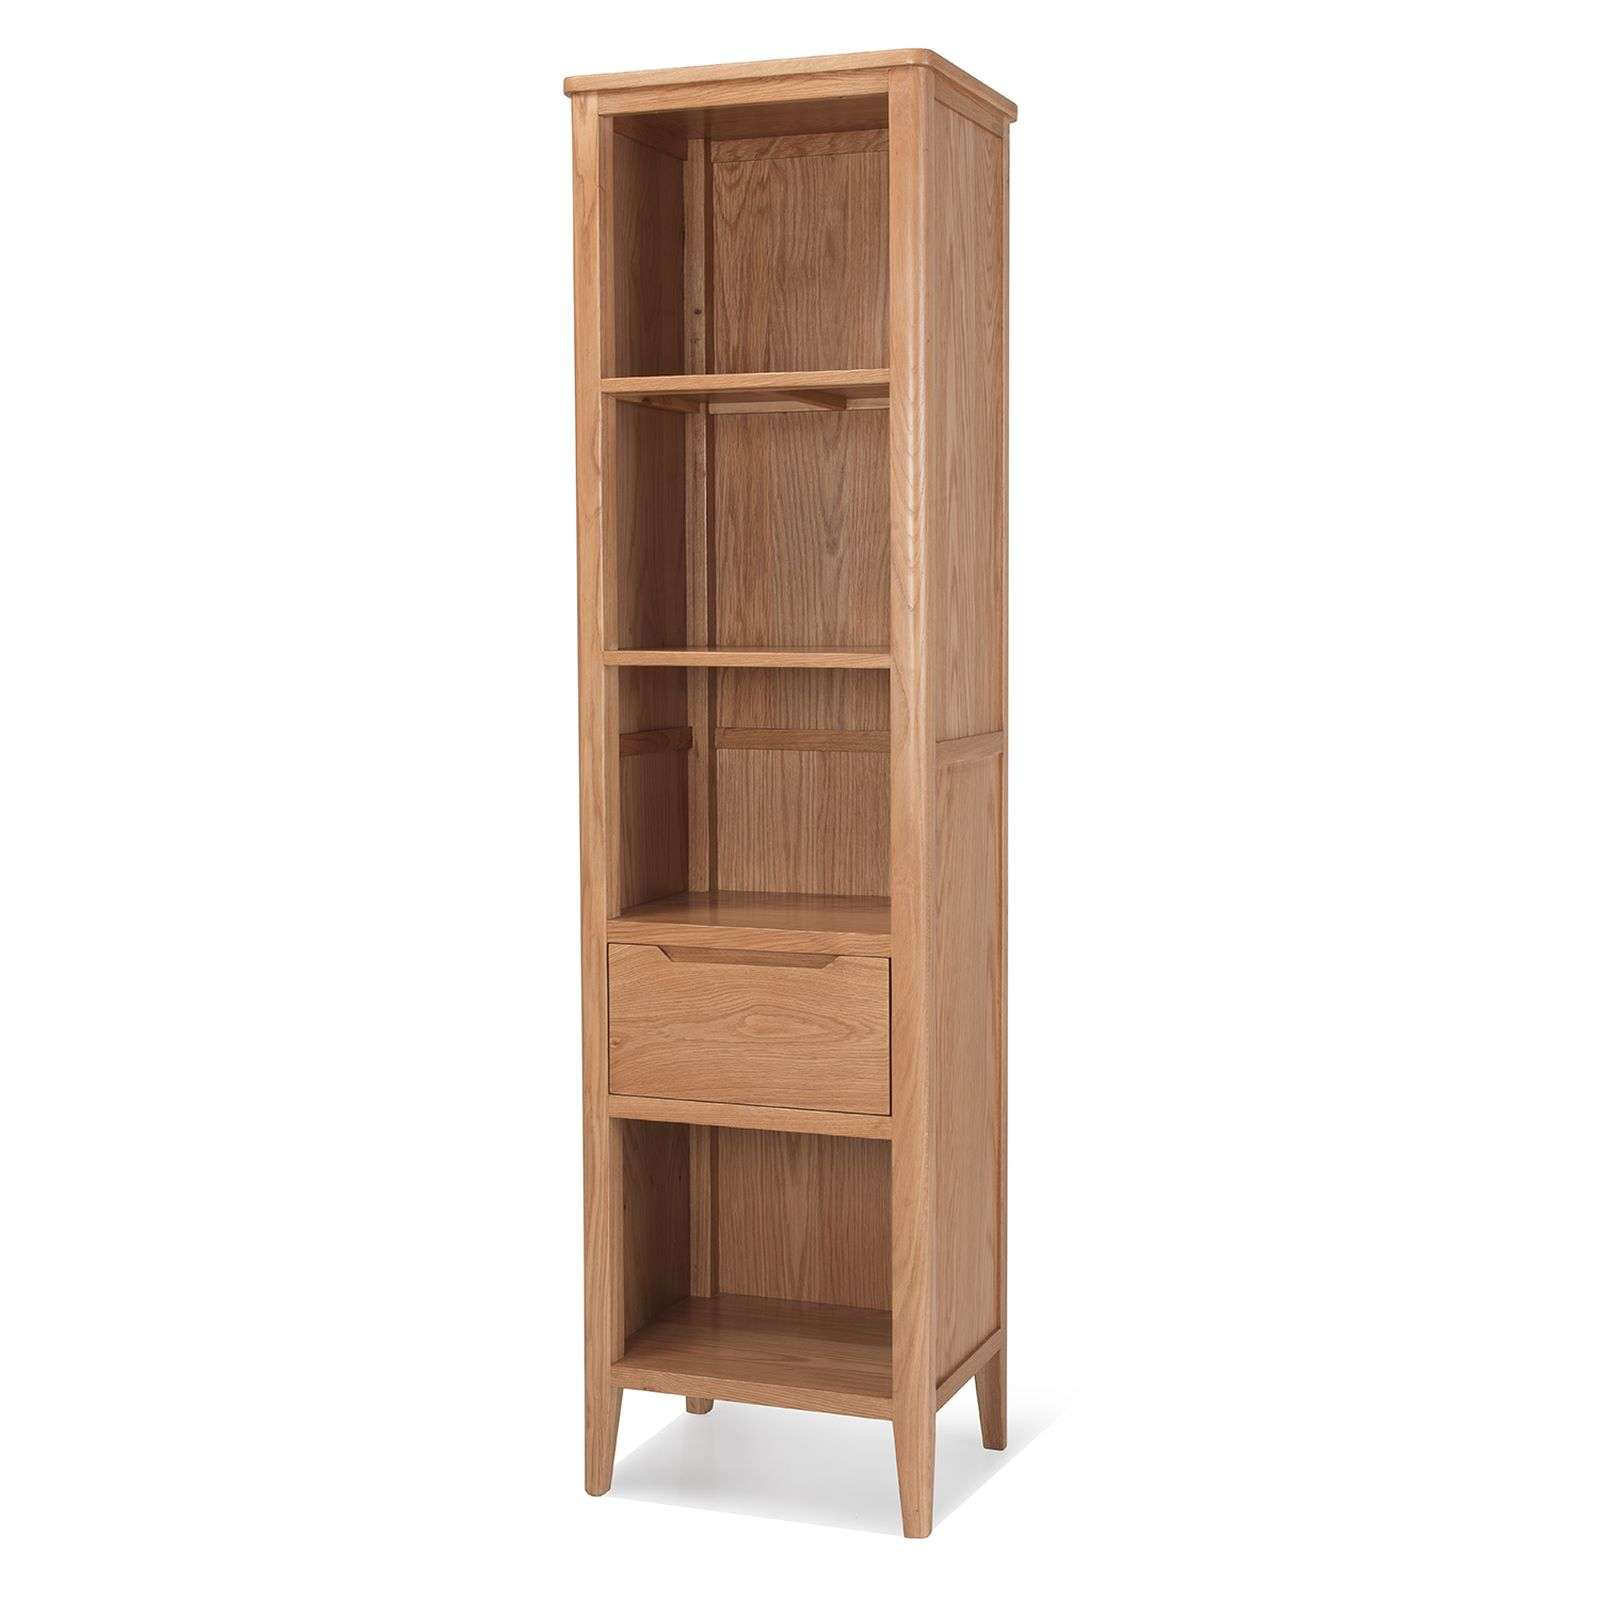 Palma Solid Oak Narrow Bookcase Fast Free Delivery